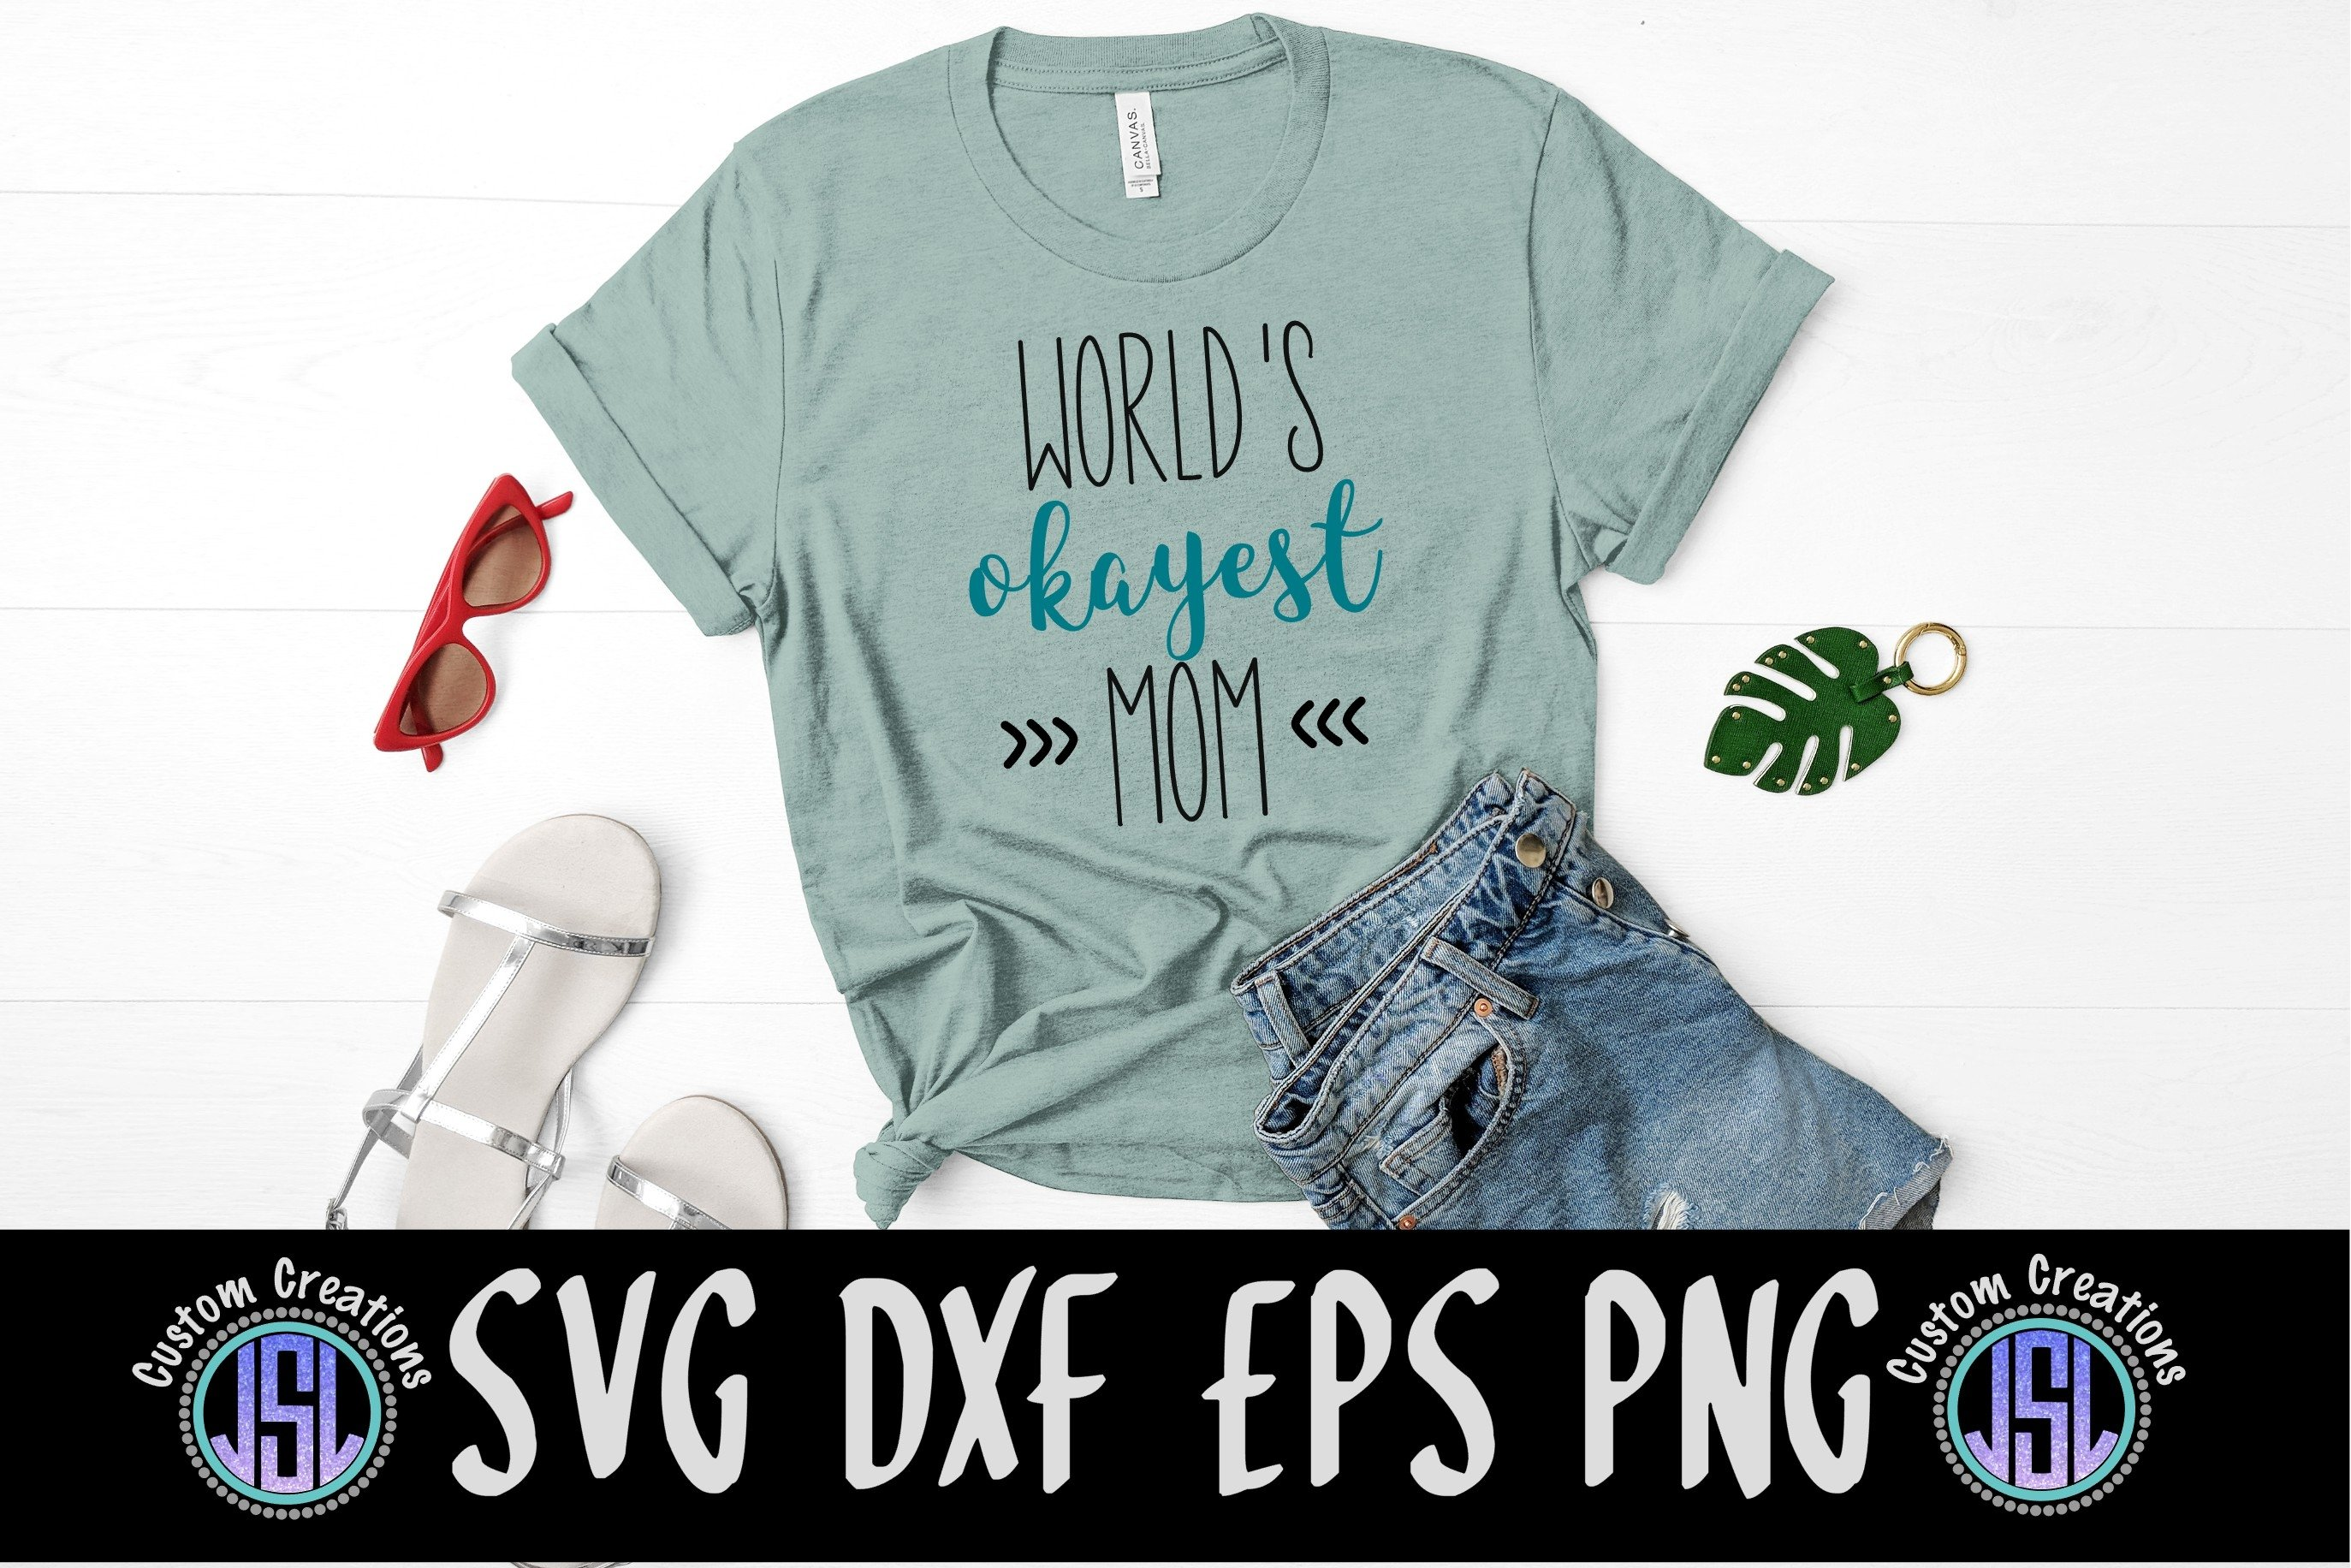 World's Okayest Mom | Mom SVG File | SVG DXF EPS PNG example image 1